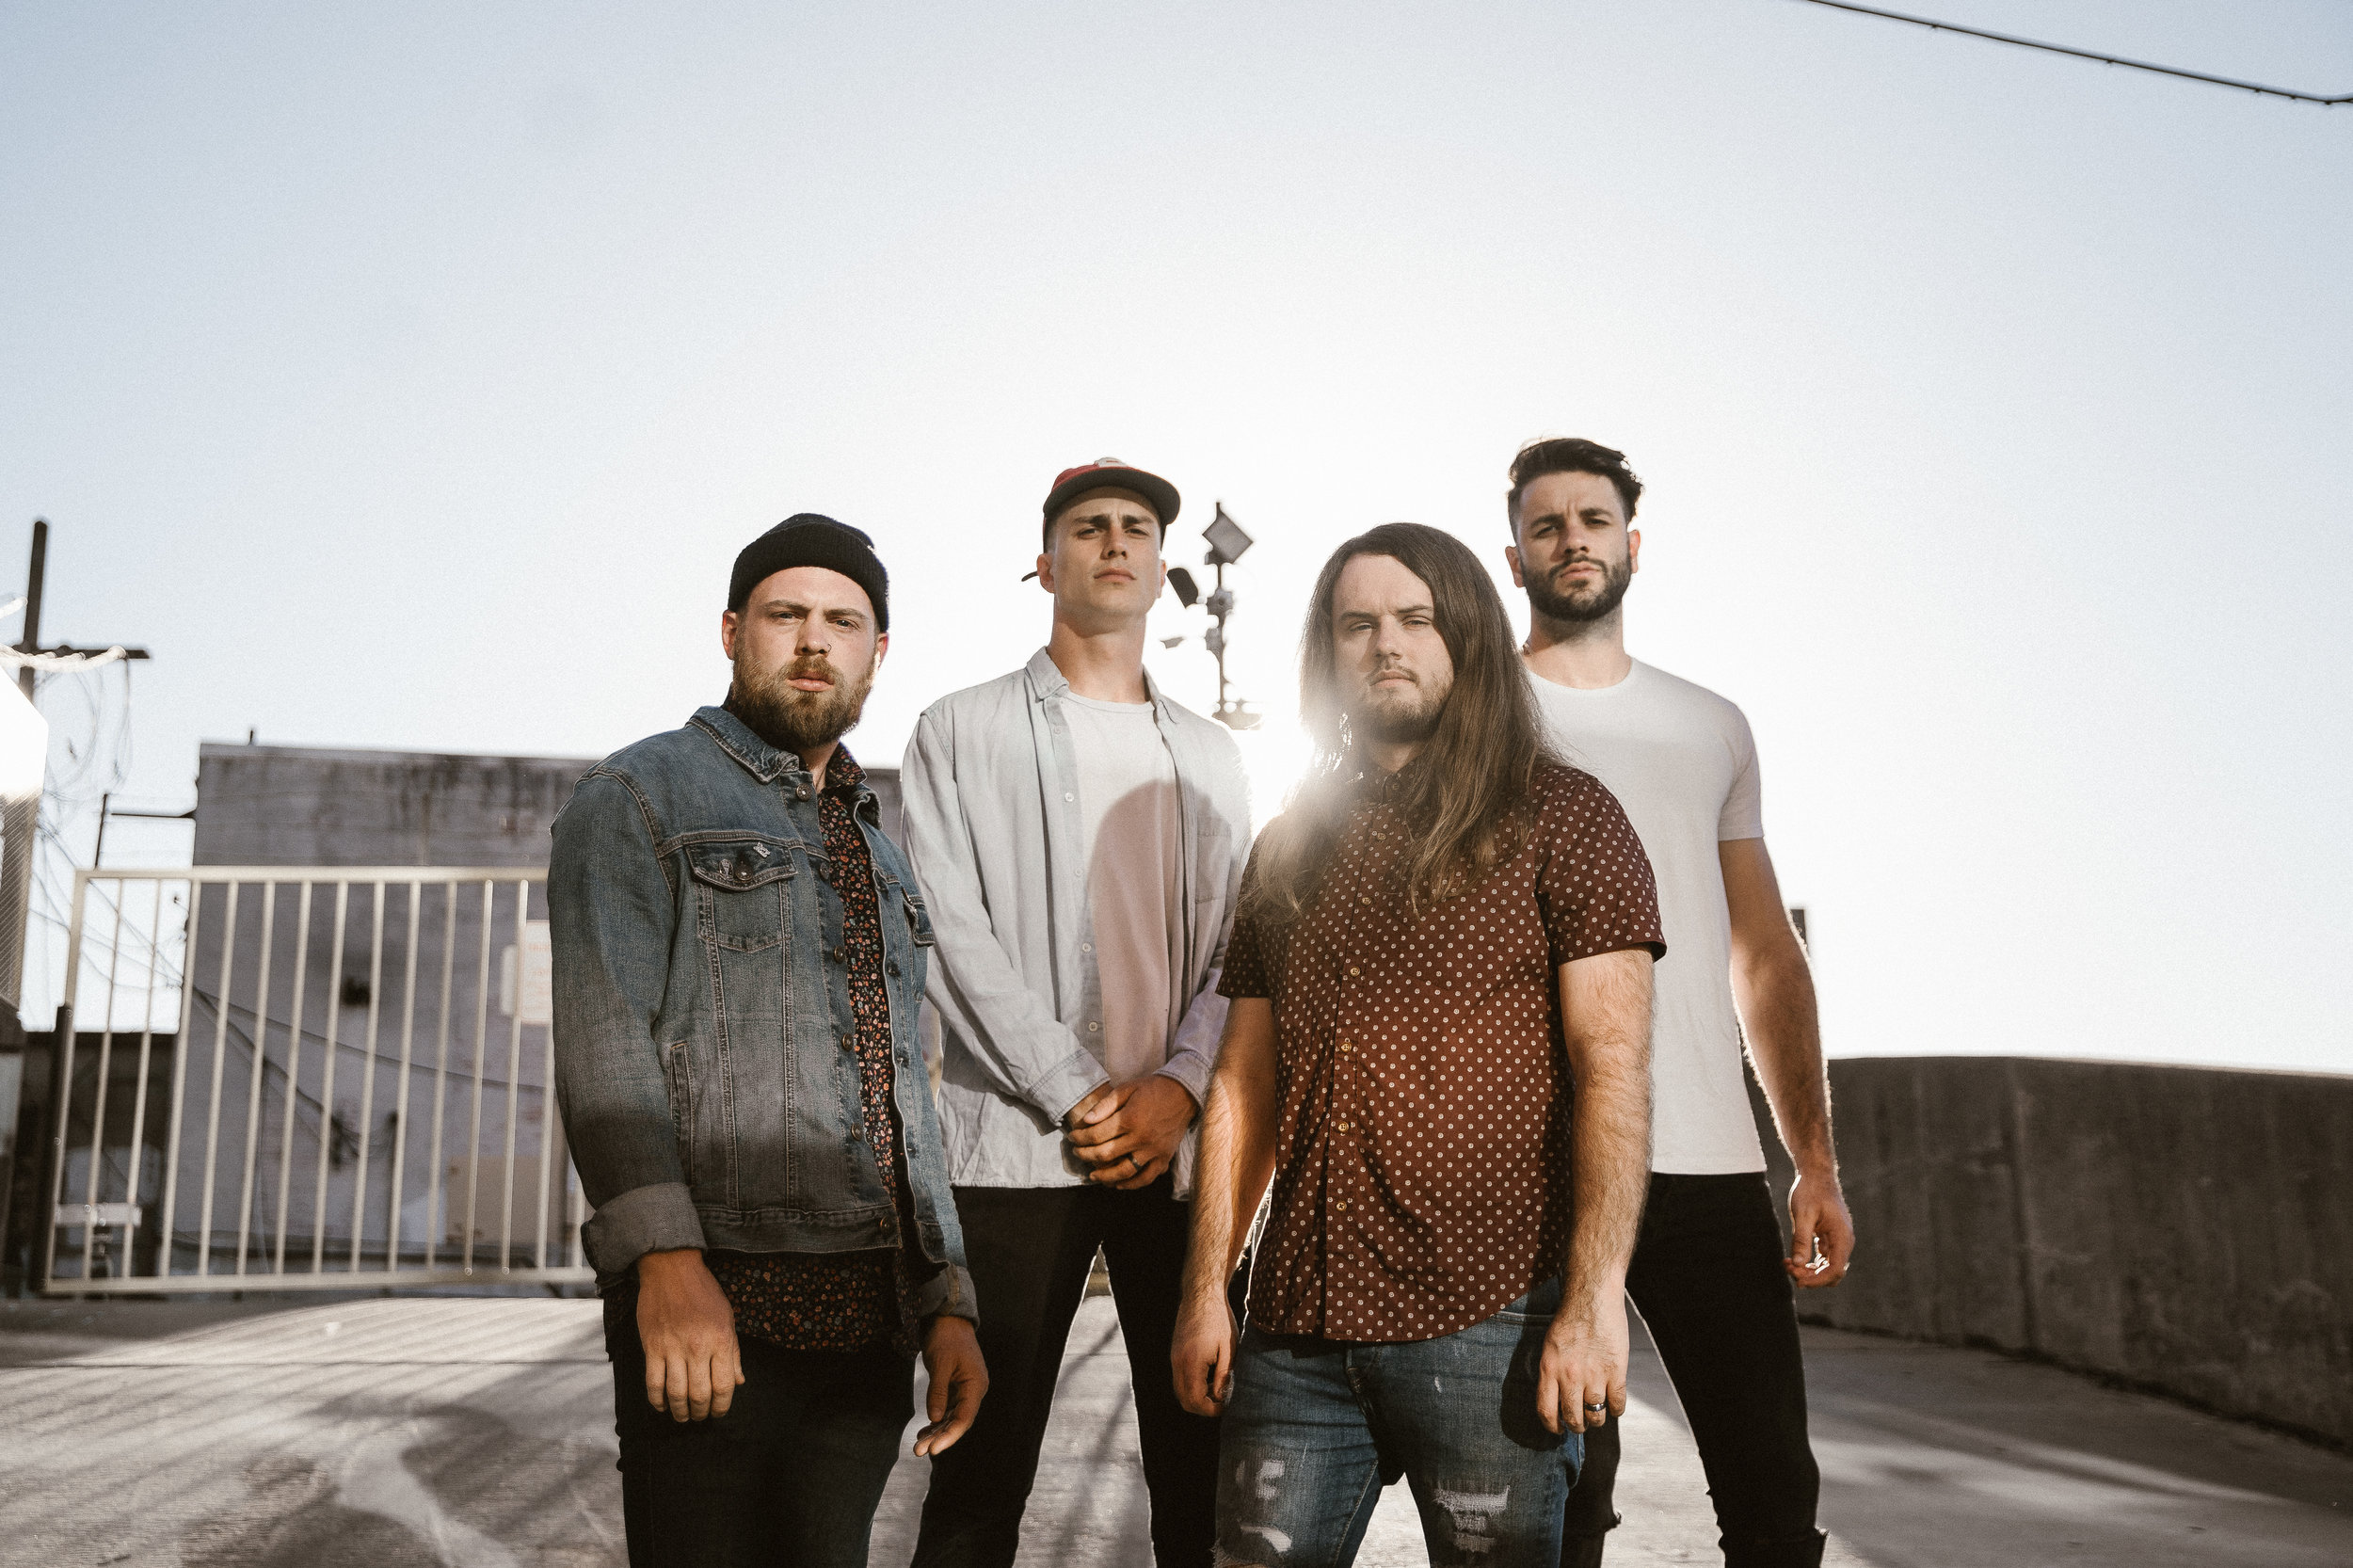 You can find Fit For A King Online at the following:  Website:  http://www.fitforakingband.com   Facebook:  https://www.facebook.com/fitforakingband/   Twitter:  https://twitter.com/fitforaking   Instagram:  https://www.instagram.com/fitforakingtx/